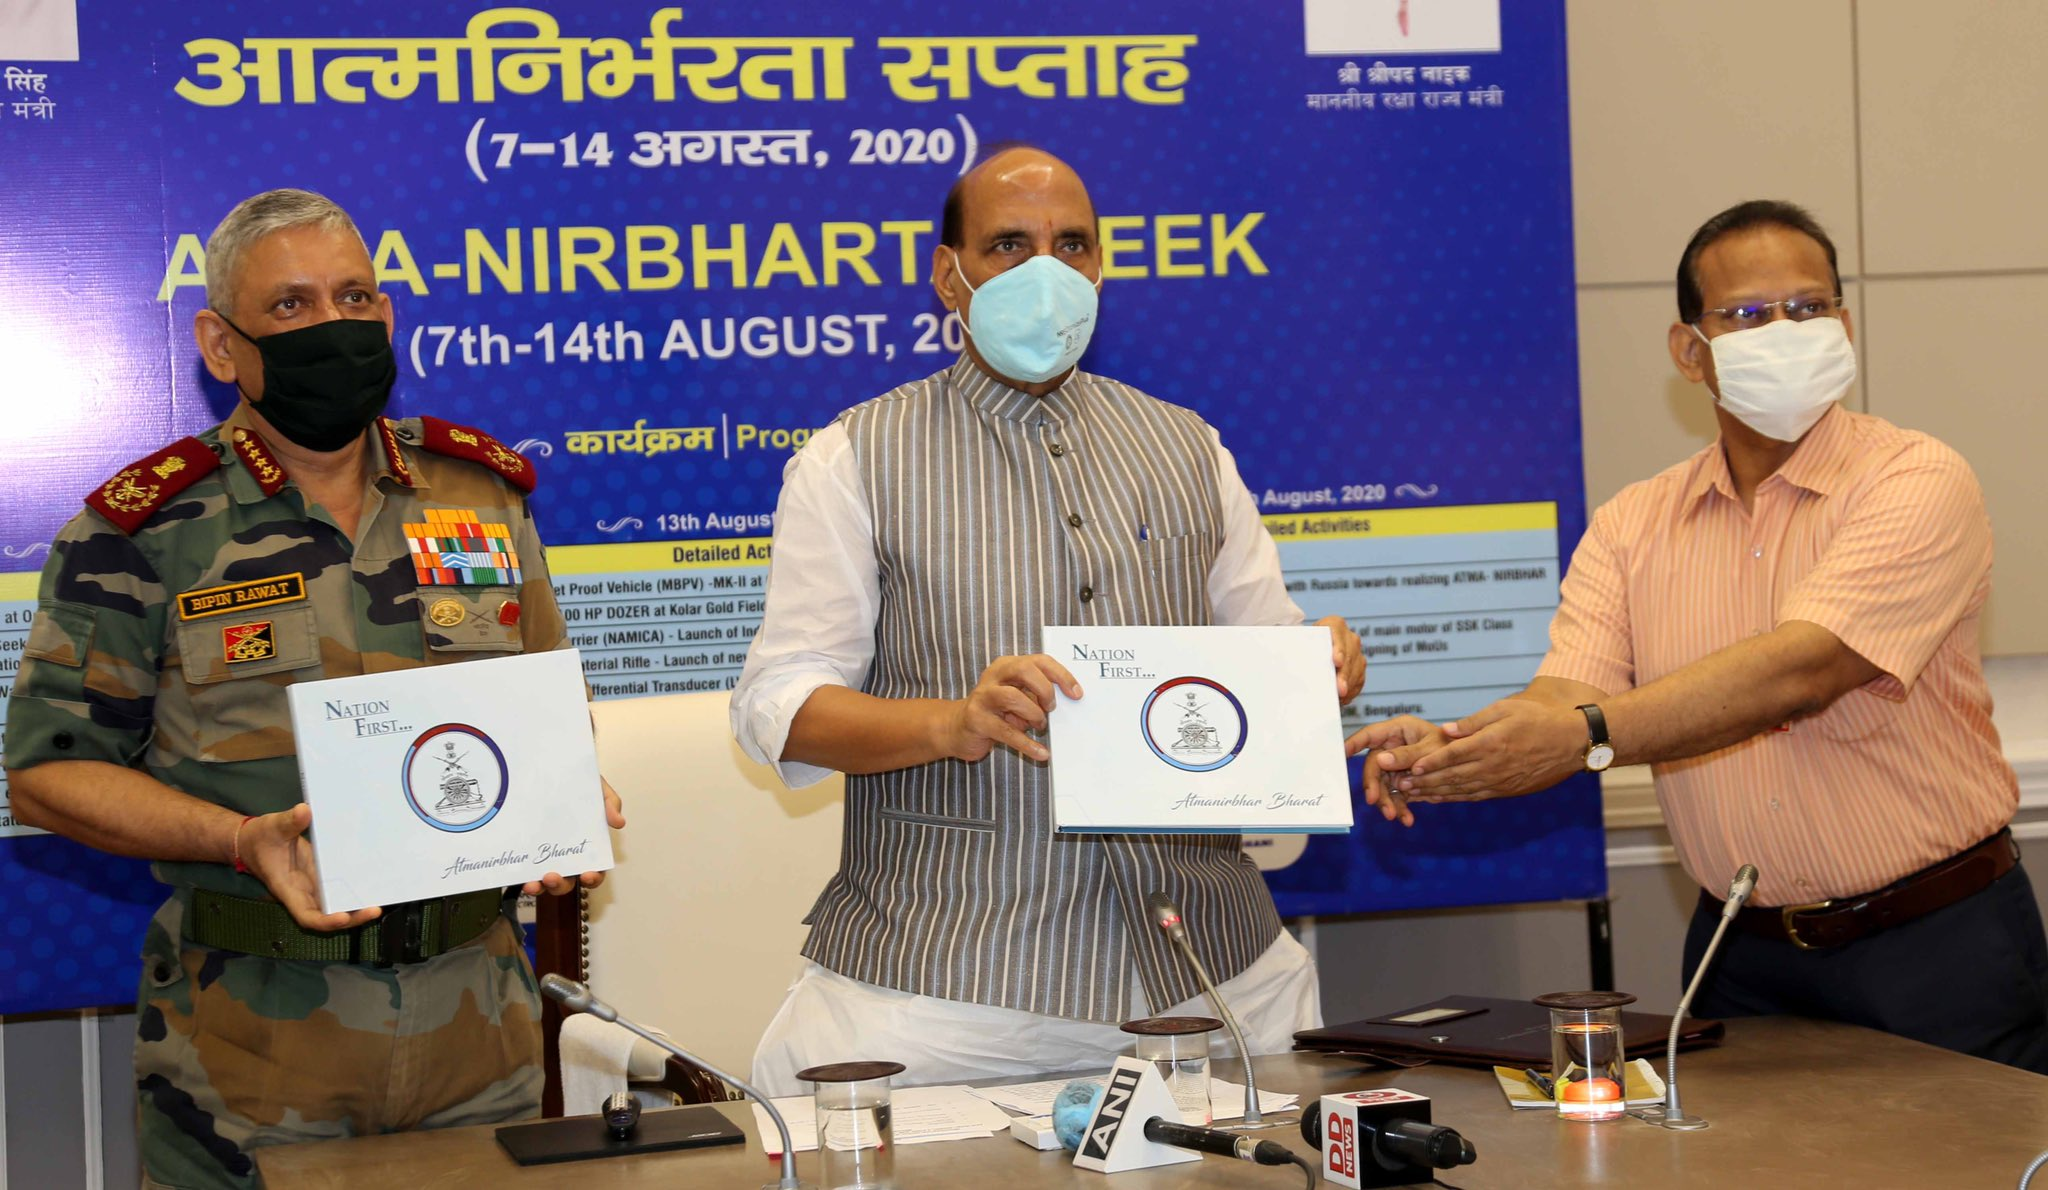 Rajnath Singh launches portal for 'Opportunities for Make In India in Defence'